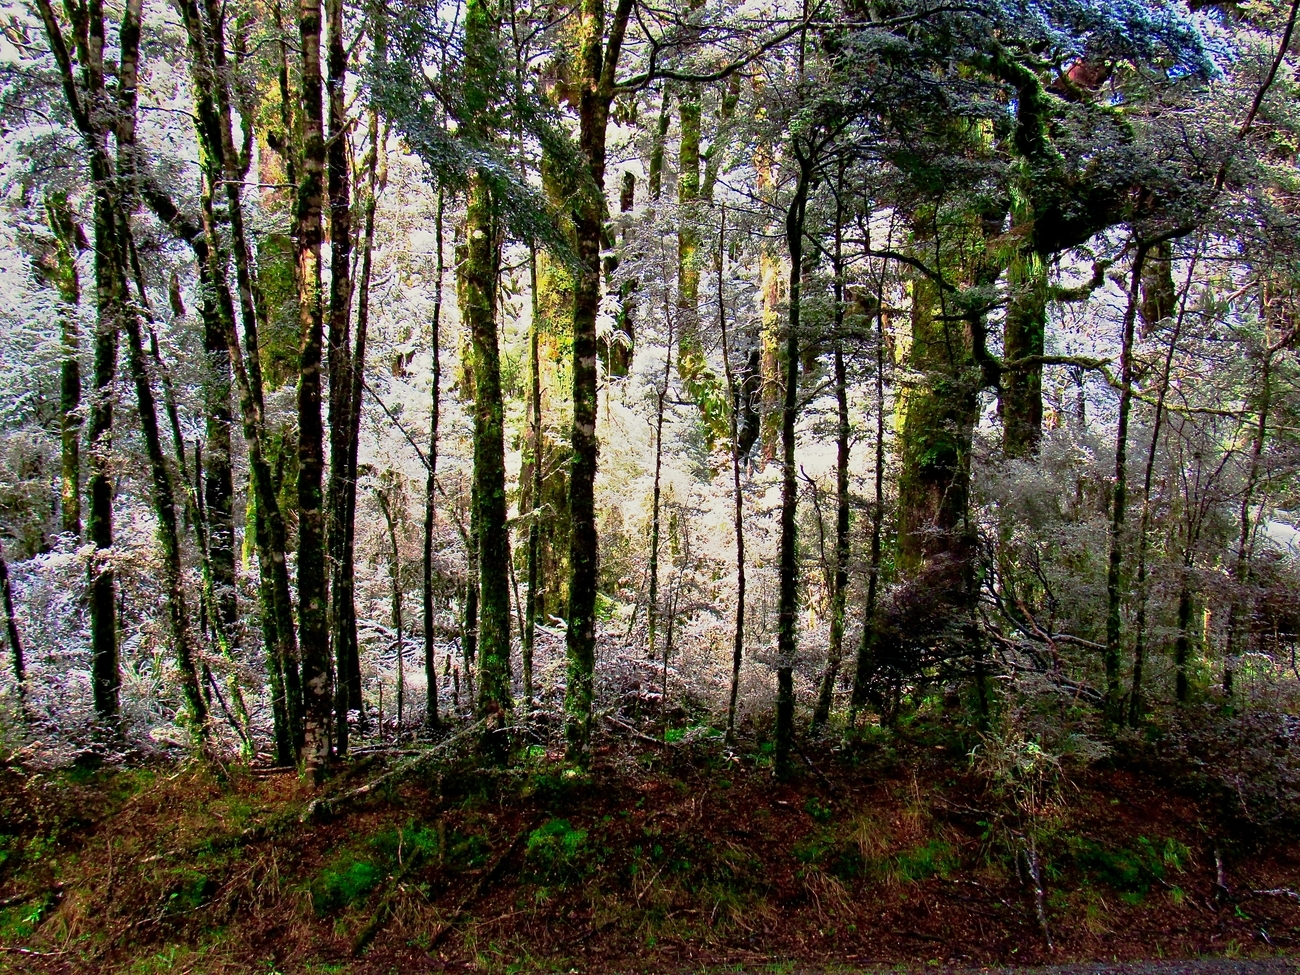 On the slopes of My Ruapehu is a native beech tree rain forest, the slopes are often curtained in rain showers and the trees grow close together and on the upper slopes are stunted due to the cold and snow in winter